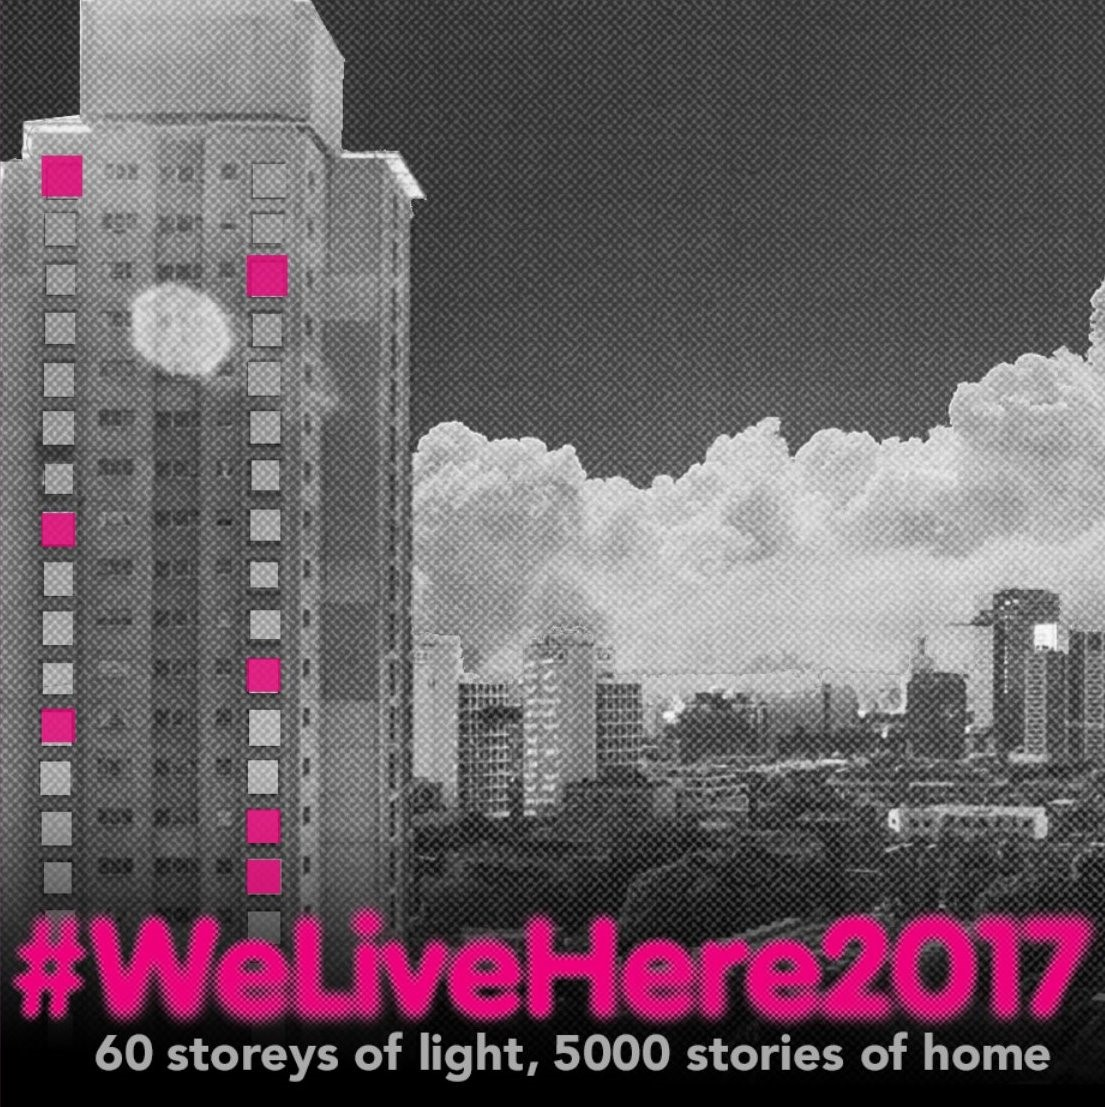 City of Sydney#WeLiveHere201760 storeys of light, 5000 stories of home - If you have walked through Redfern or Waterloo lately, you might have noticed colourful lights appearing in the windows of Matavai and Turanga towers. It's part of #WeLiveHere2017: a community led art installation that aims to generate discussion about the people affected by urban renewal projects.The project transforms the towers into a beacon to the community, powered by the people themselves. more